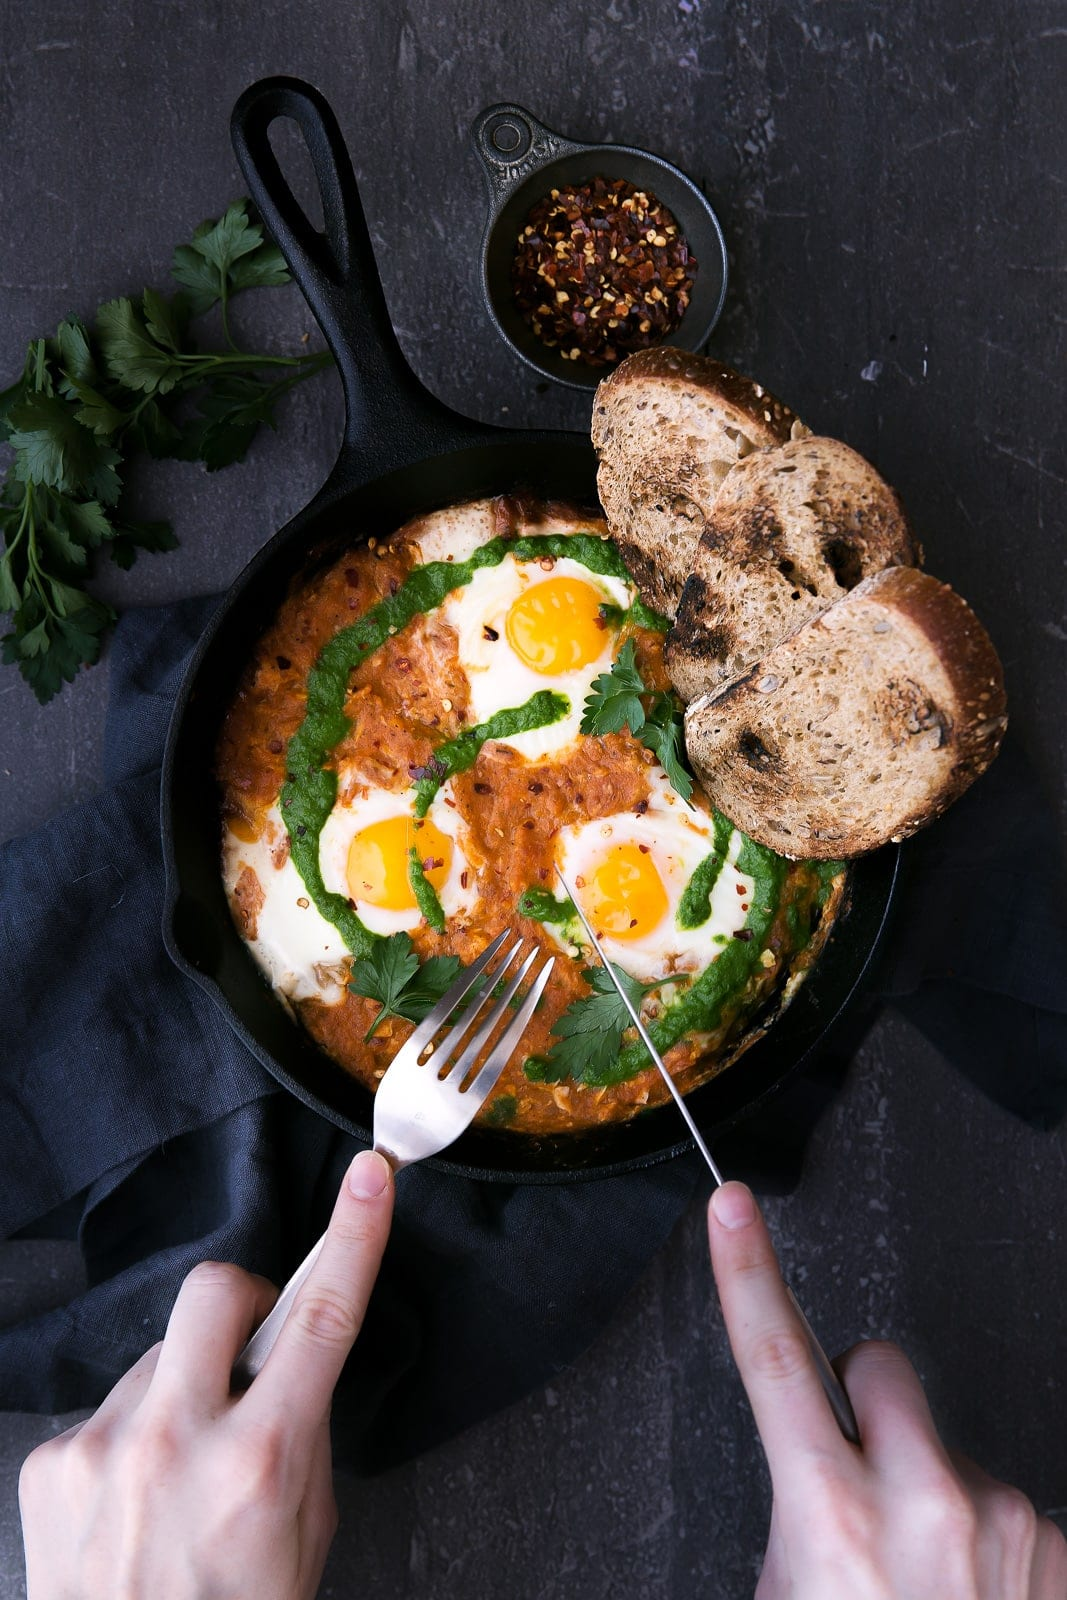 Say hello to shakshuka for breakfast: perfectly poached eggs in a spiced tomato sauce!